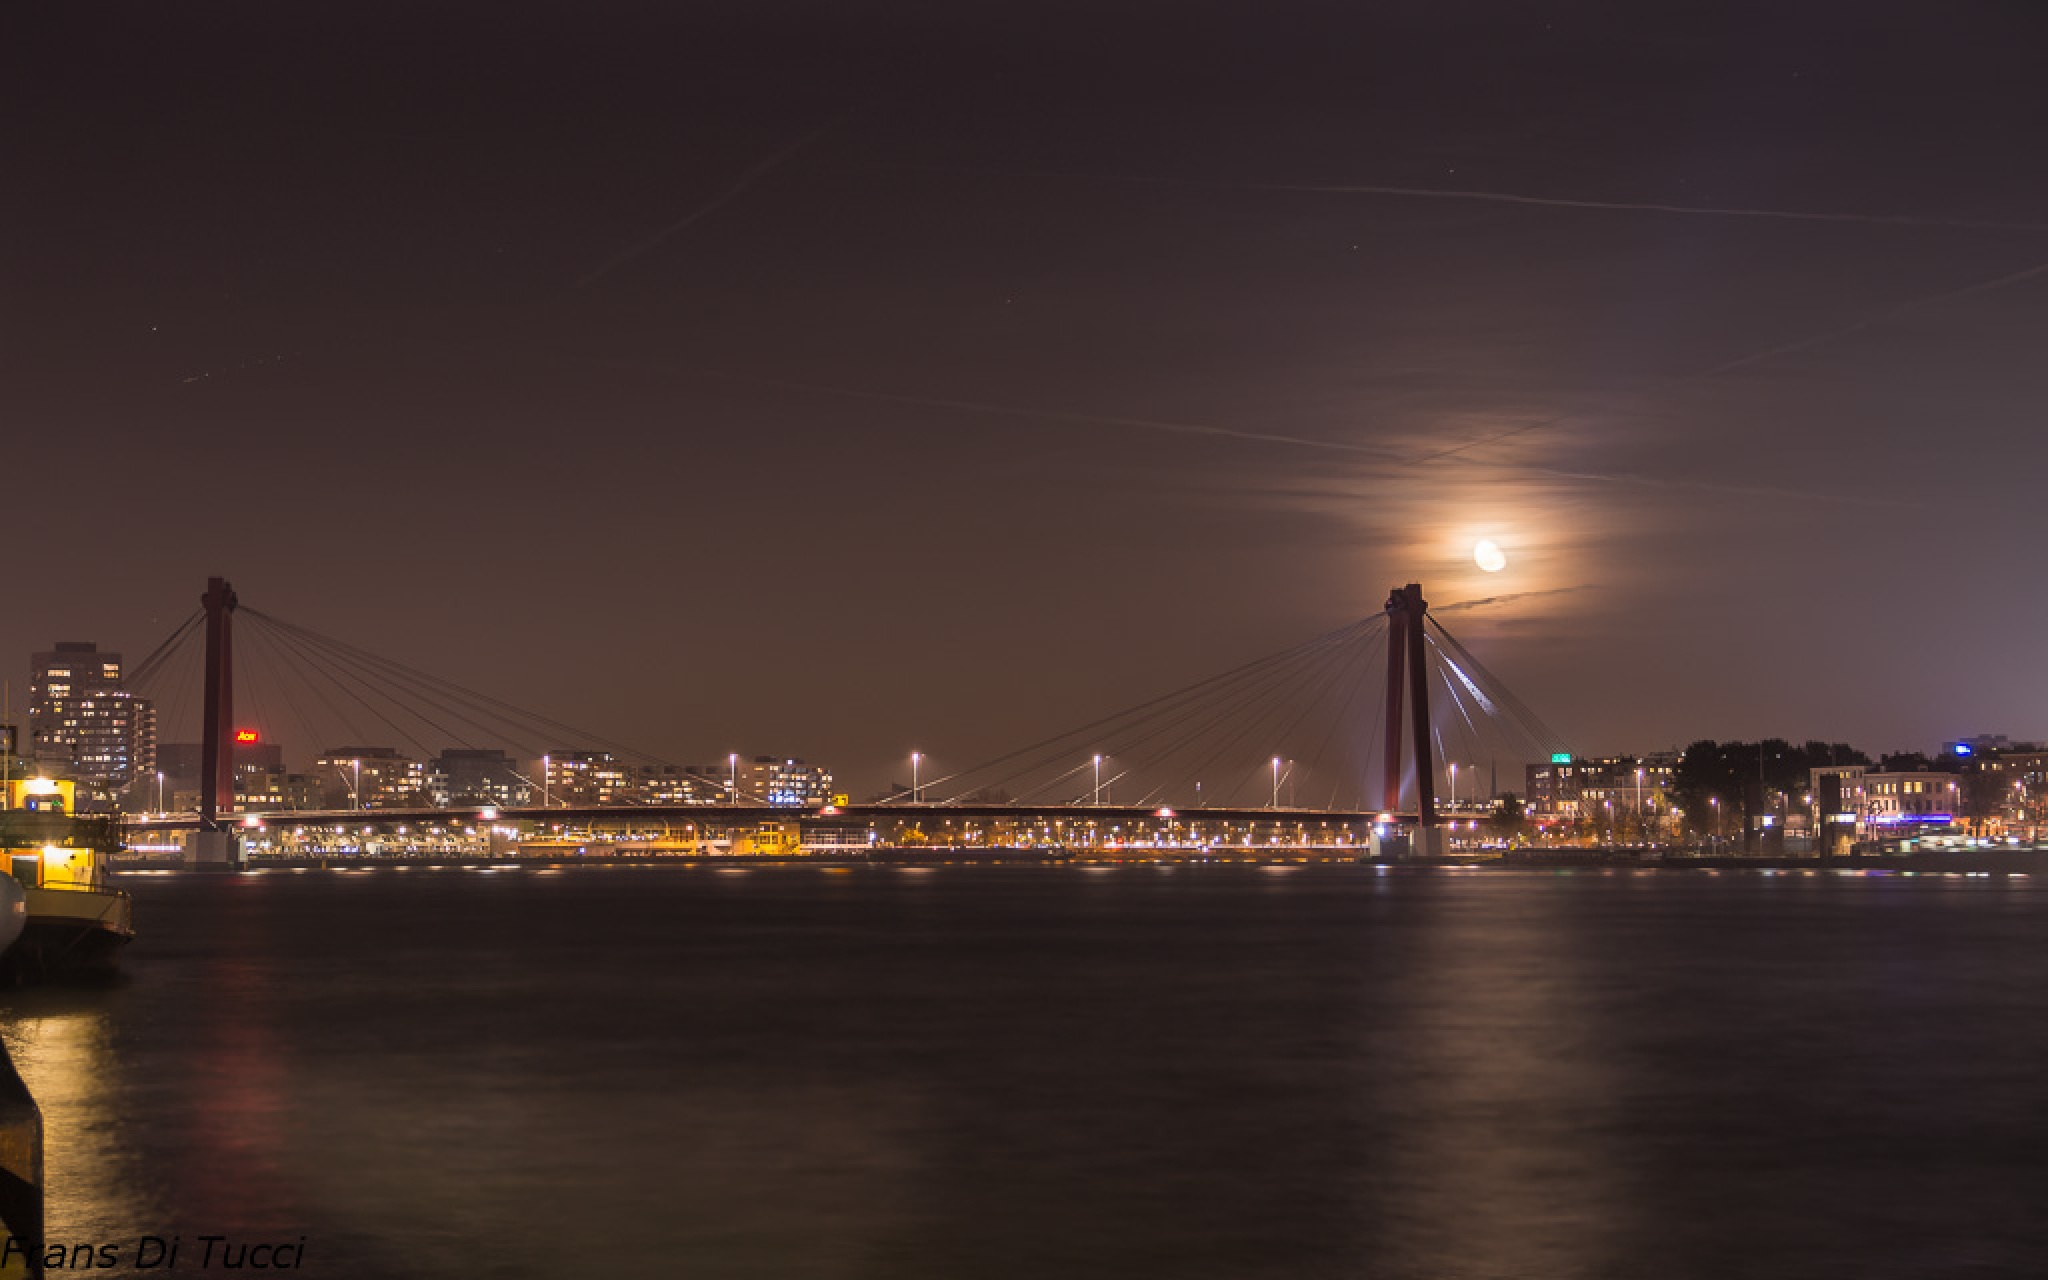 Moon rise over the bridge by frans.ditucci